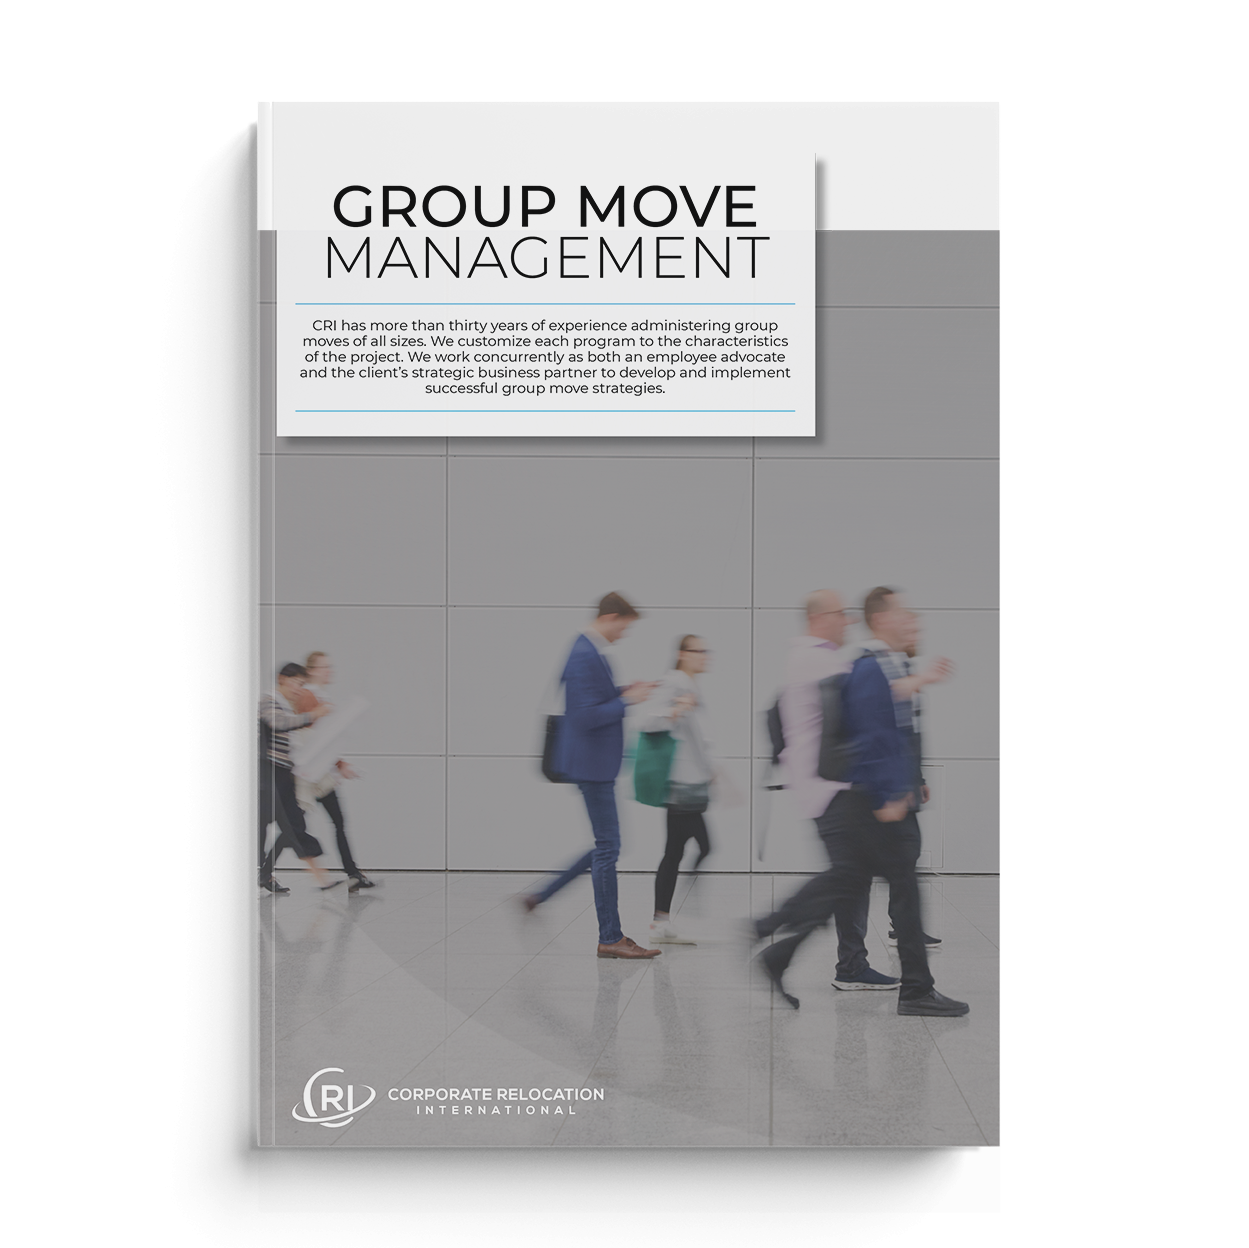 group move mockup_square_2